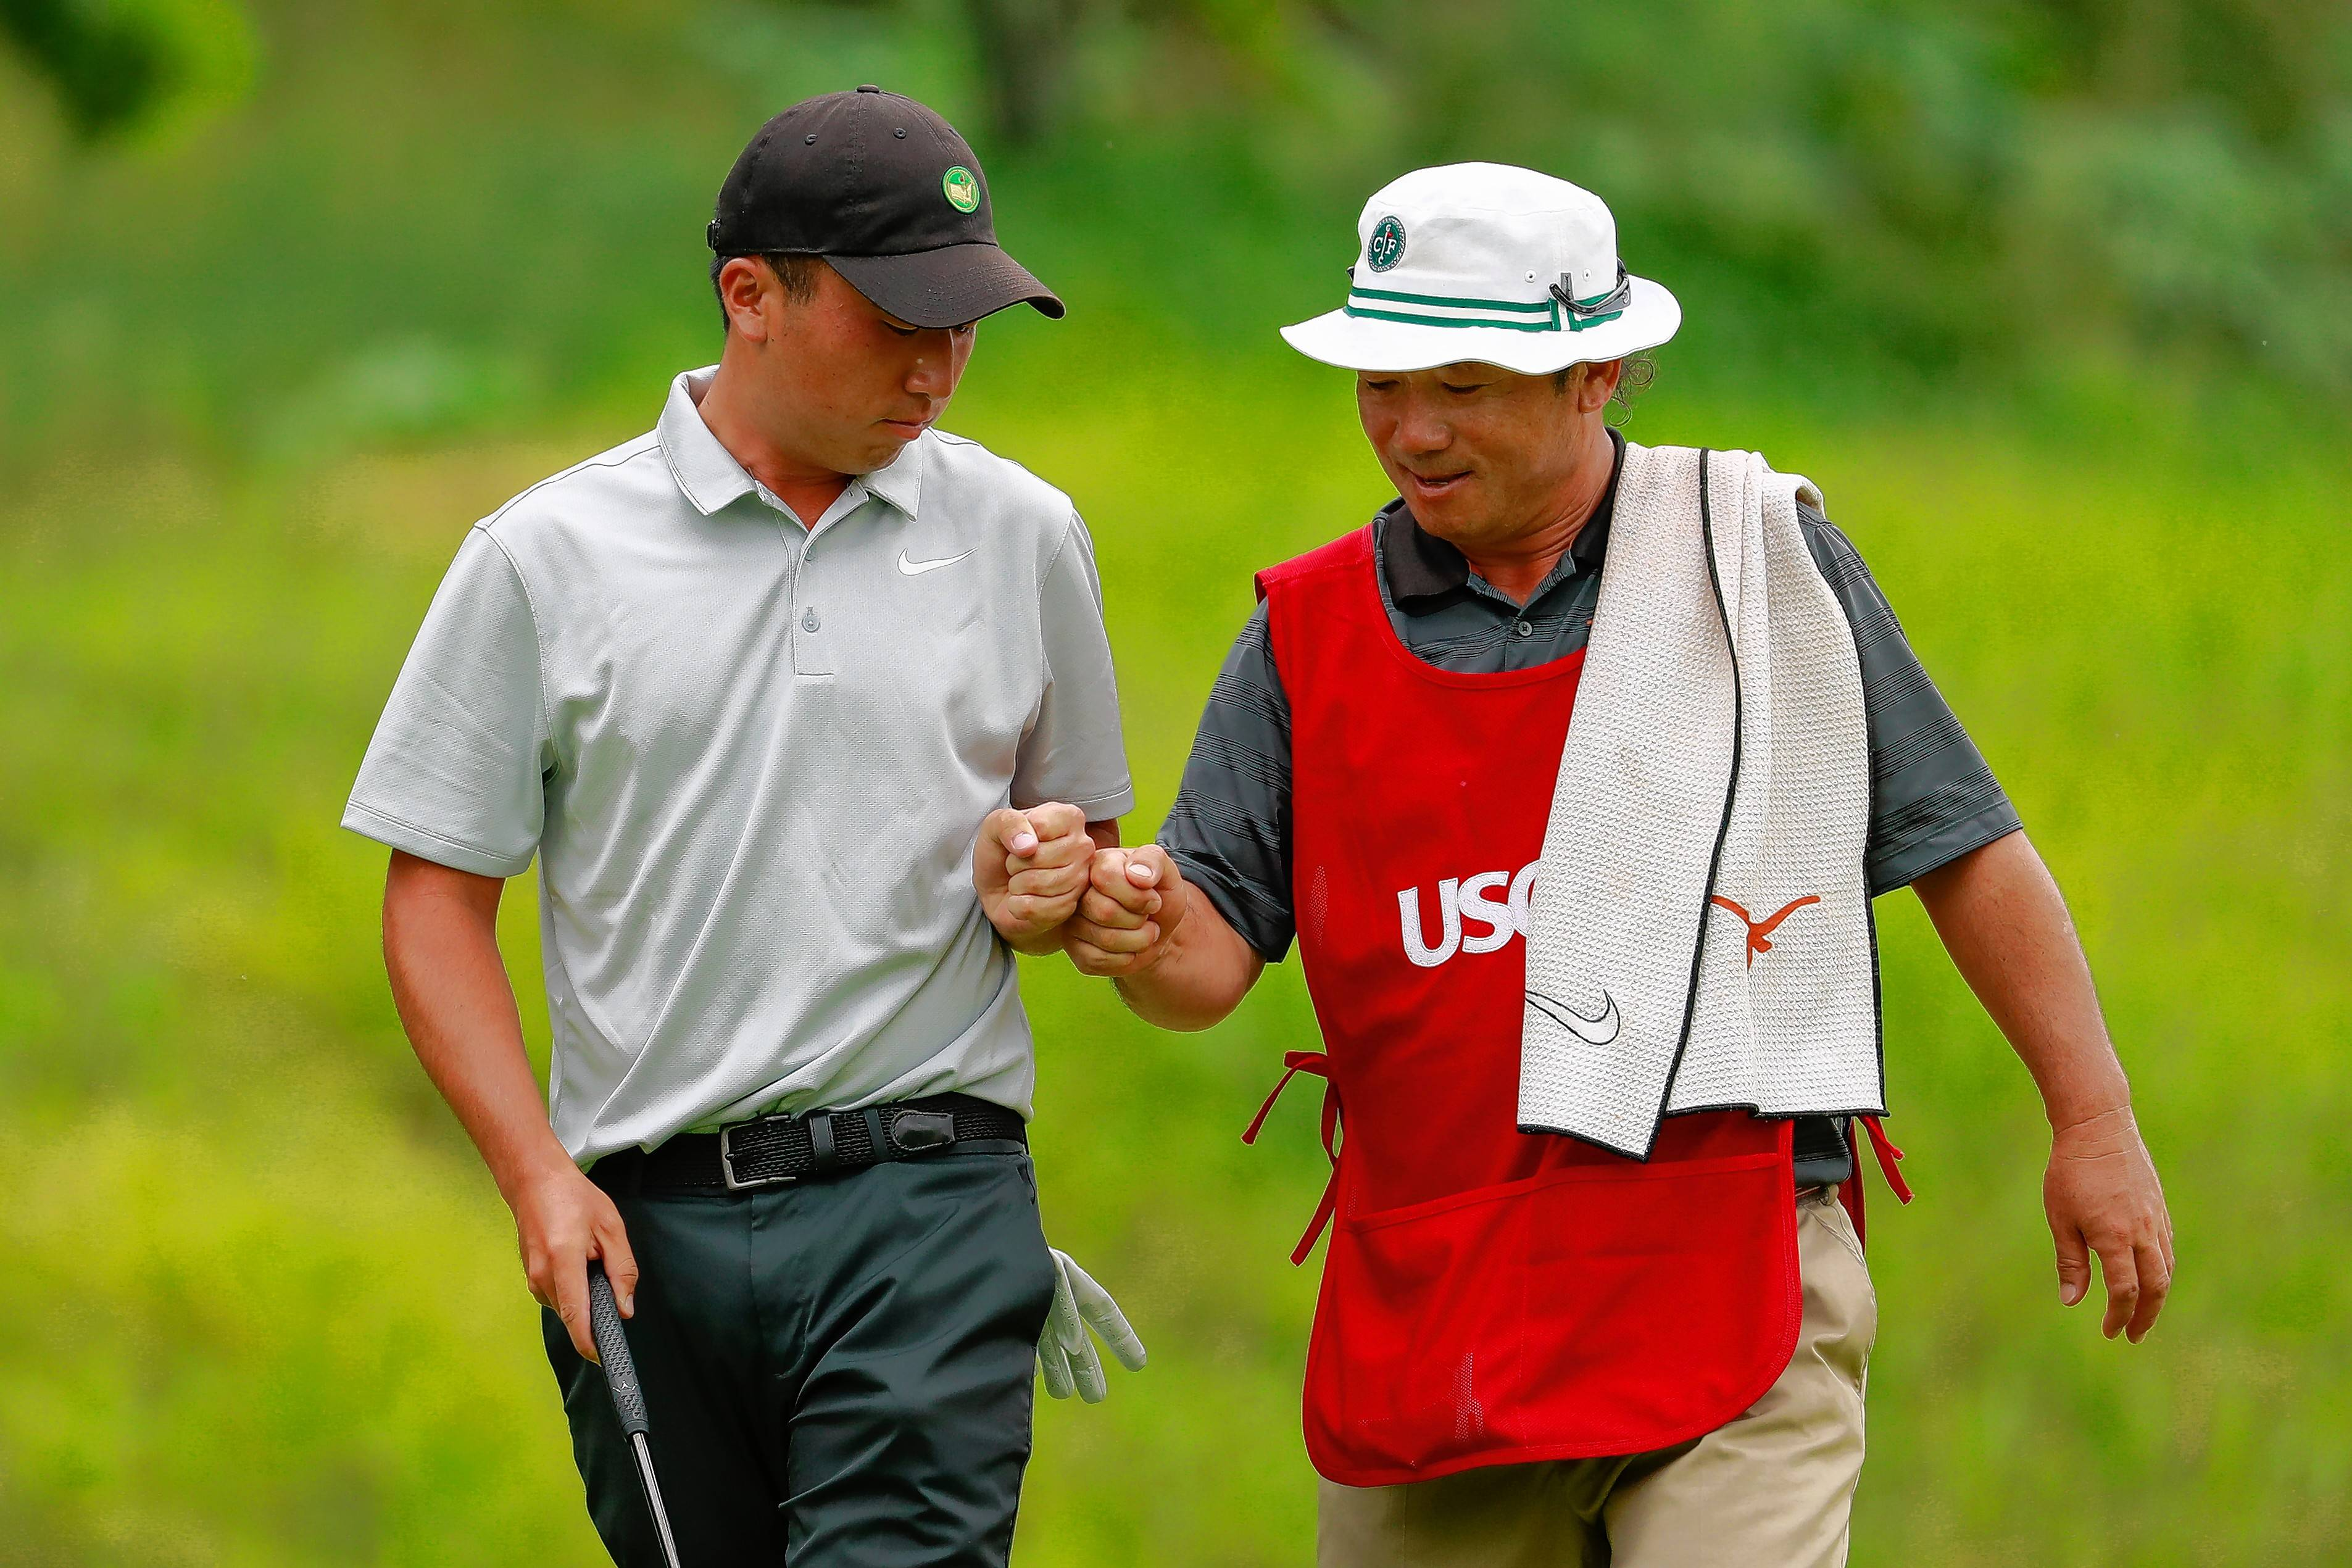 Doug Ghim fist bumps his father on the fifth hole during the semifinal round of match play of the 2017 U.S. Amateur at The Riviera Country Club in Los Angeles, Calif. on Saturday, Aug. 19, 2017.